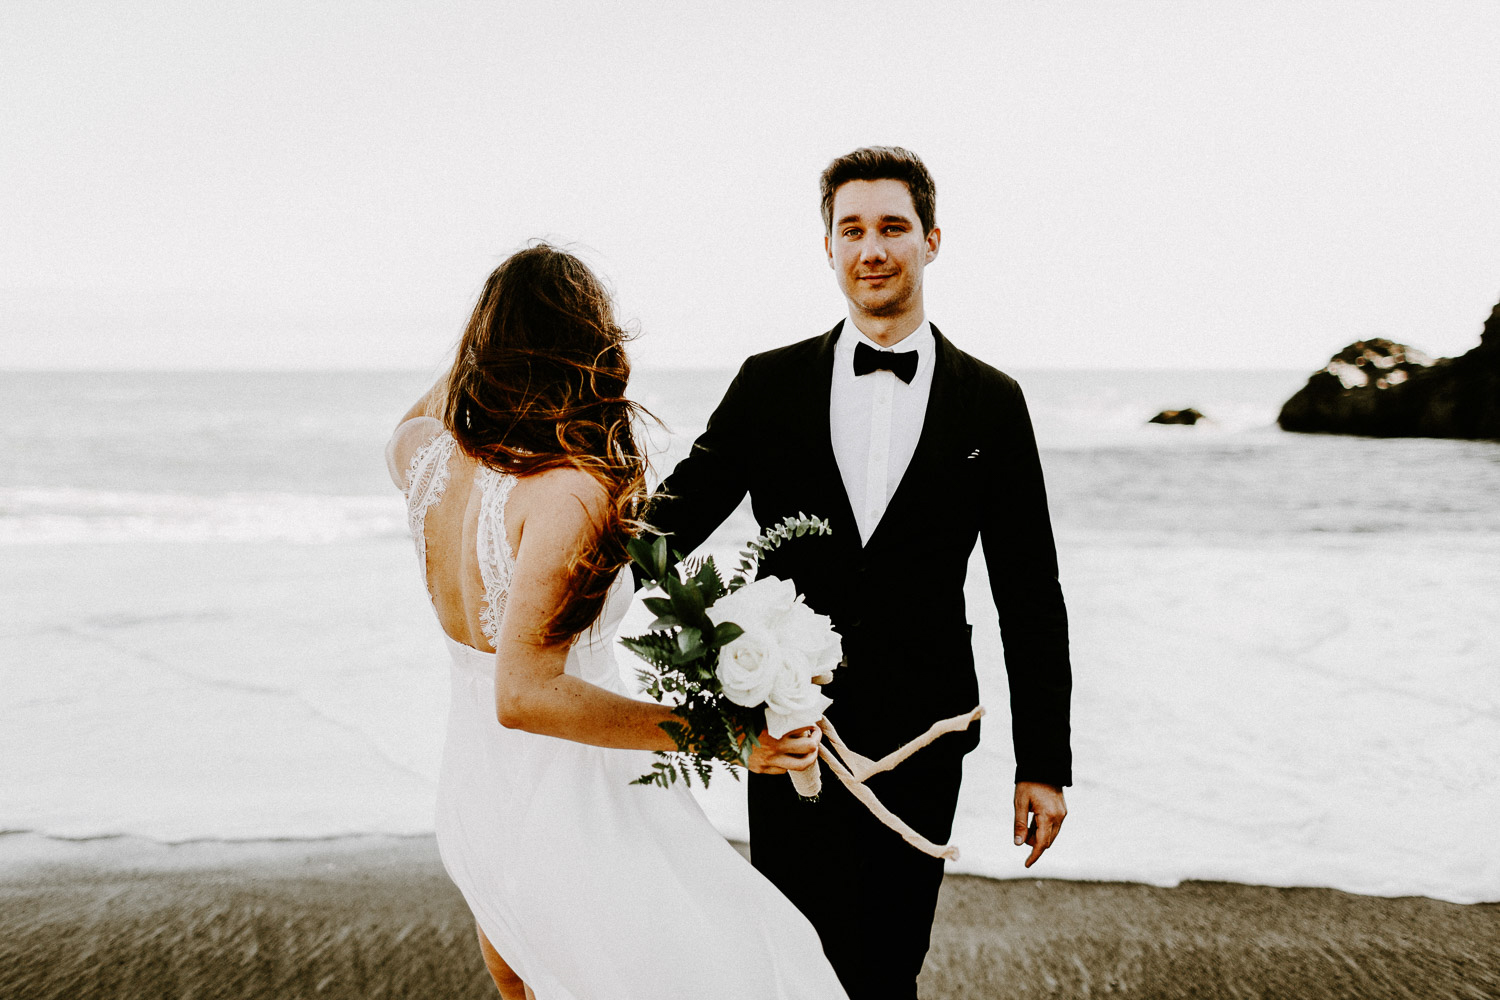 Image of bride faces the ocean while groom faces the camera